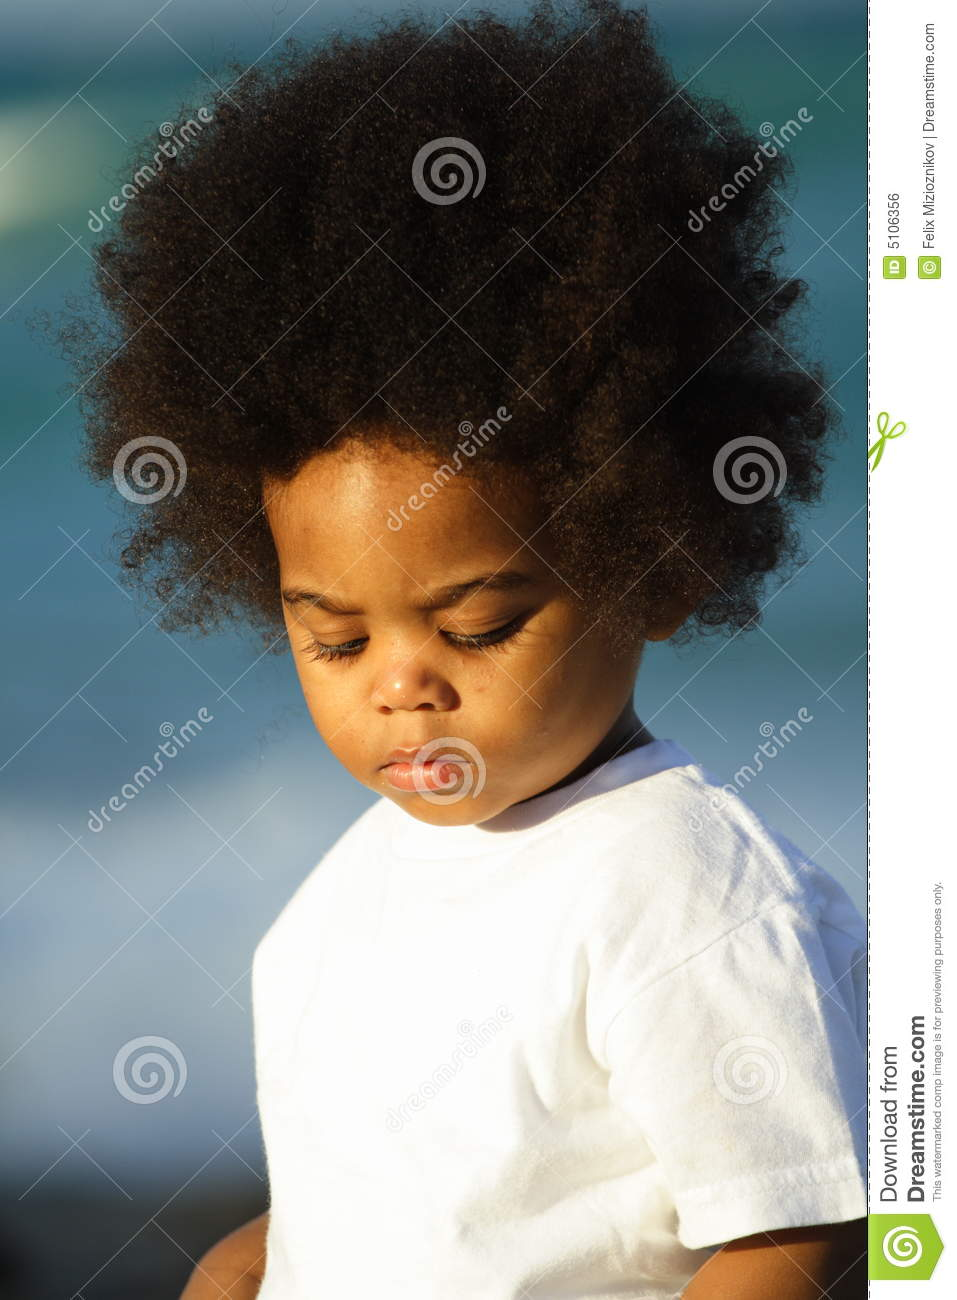 Young Boy With Afro Hairstyle Stock Photo Image Of Body